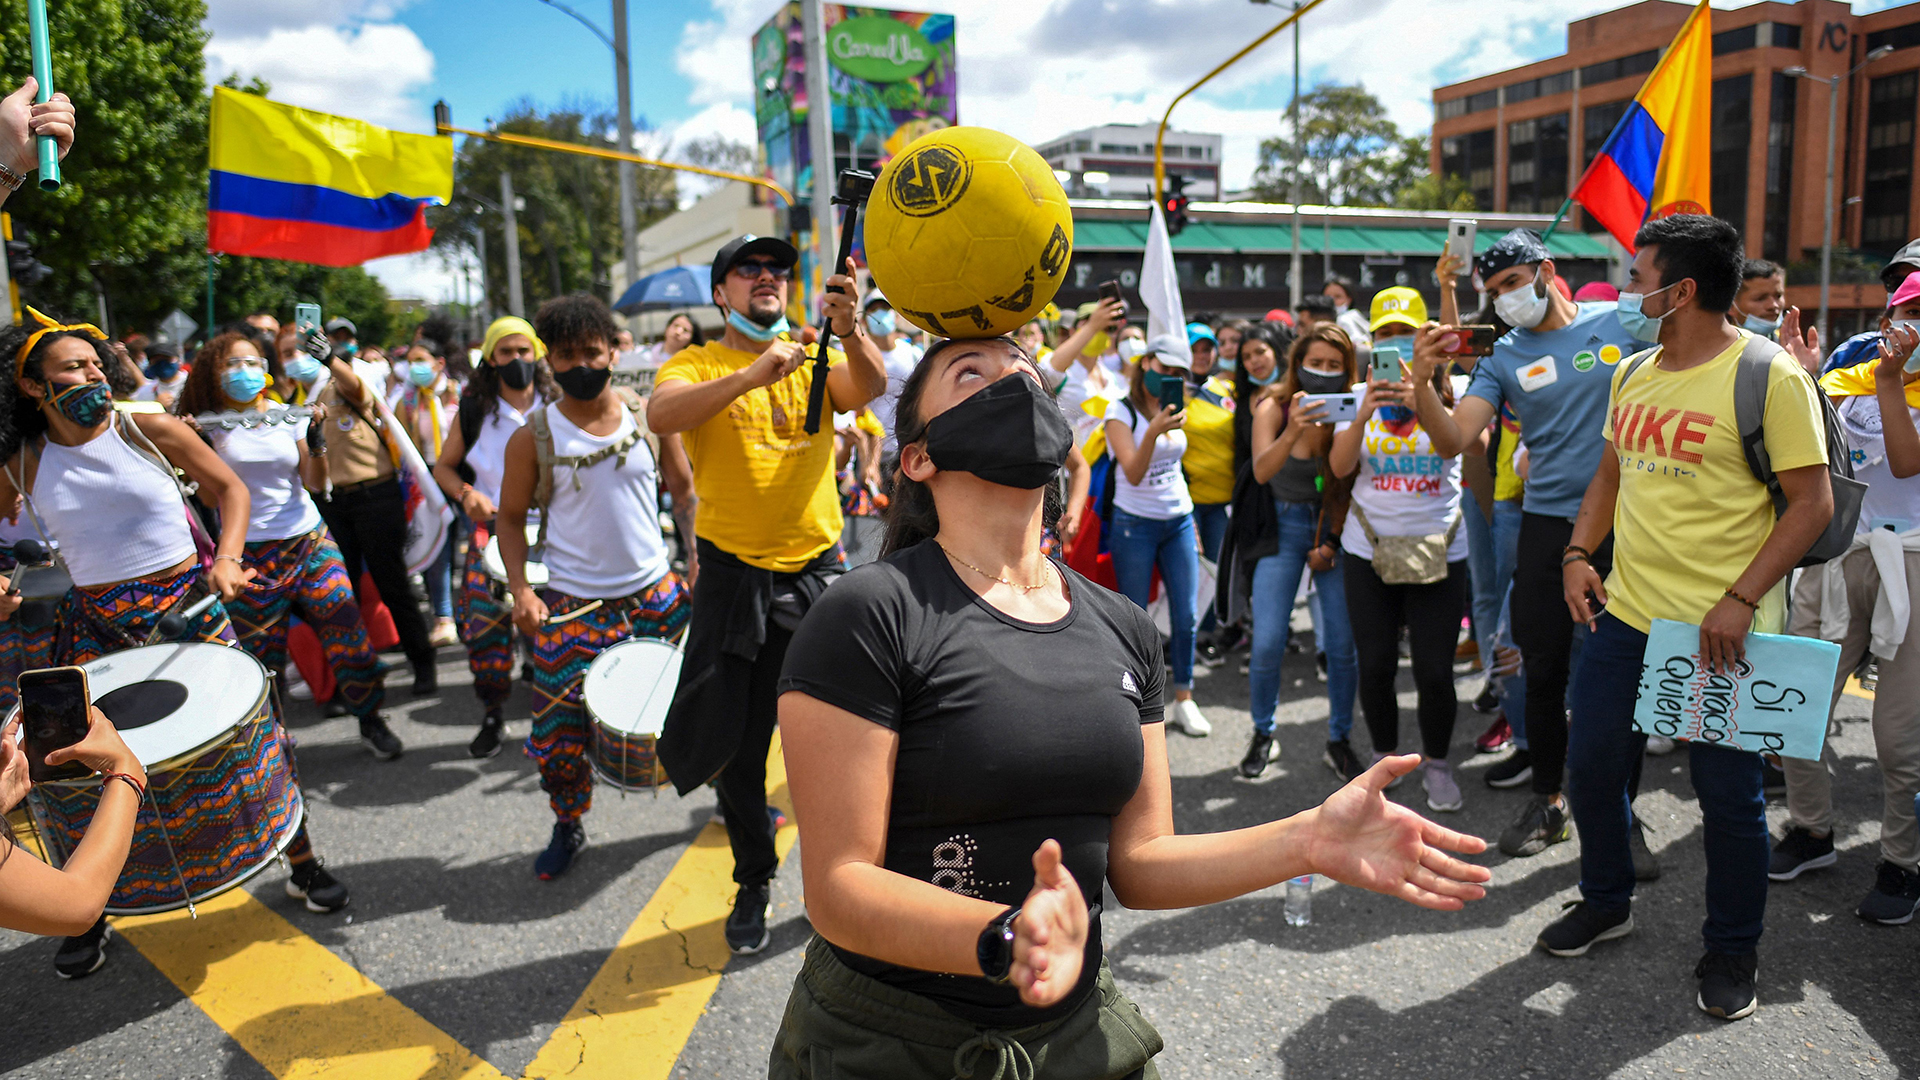 Colombia stripped of Copa America hosting rights amid ongoing anti-government protests